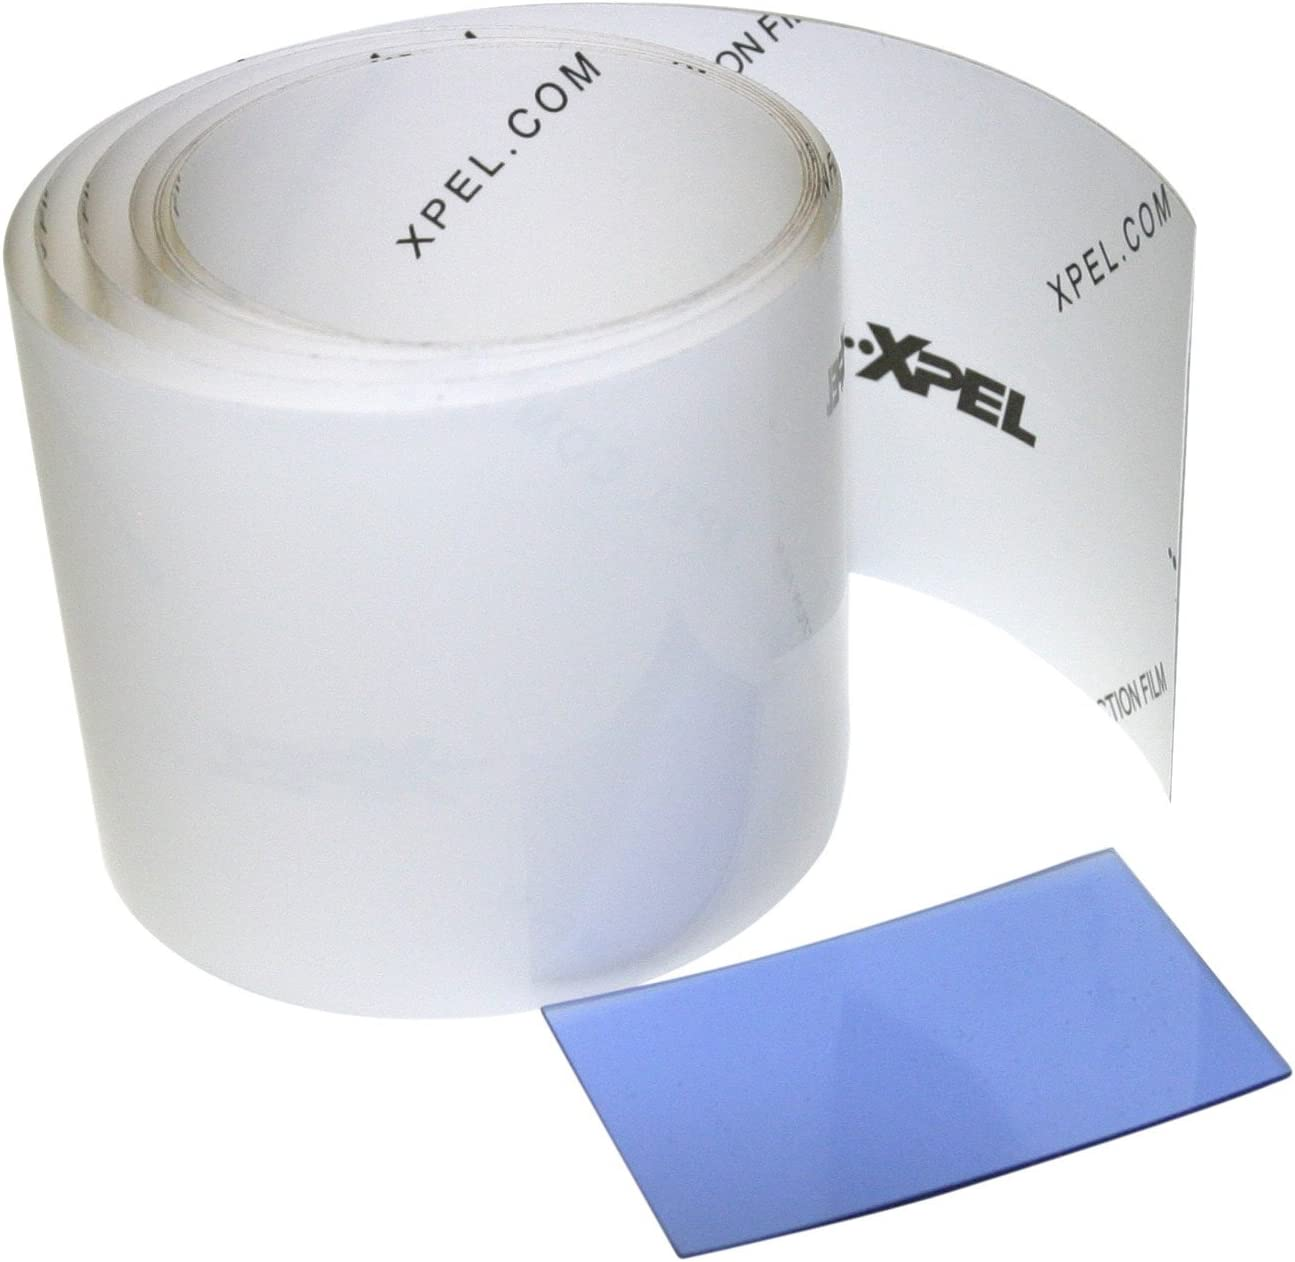 XPEL Clear Universal Paint Protection Film Kit